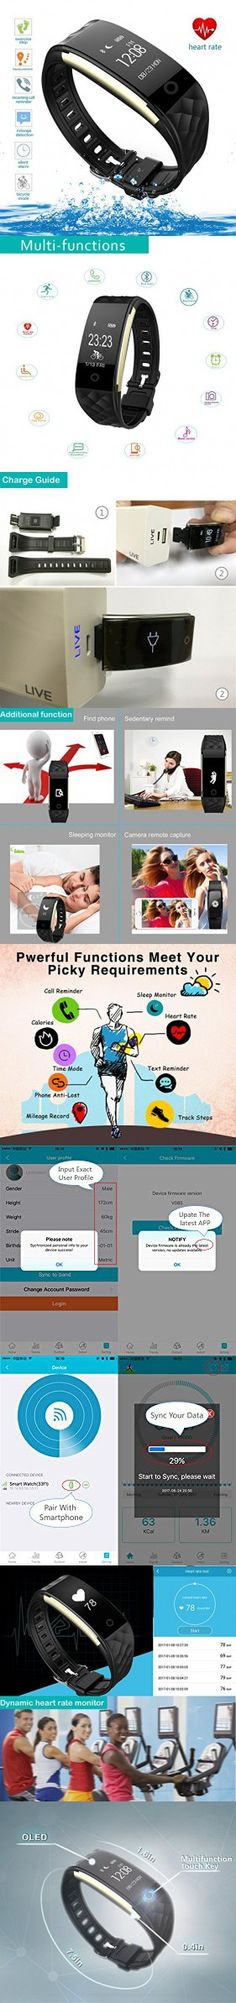 Fitness Tracker, Health Sleep Activity Tracker, Upgraded Watch Wristband with Heart Rate Monitor, Wireless Bluetooth Smart Bracelet for Outdoor Running Walking, for iPhone/Android phone